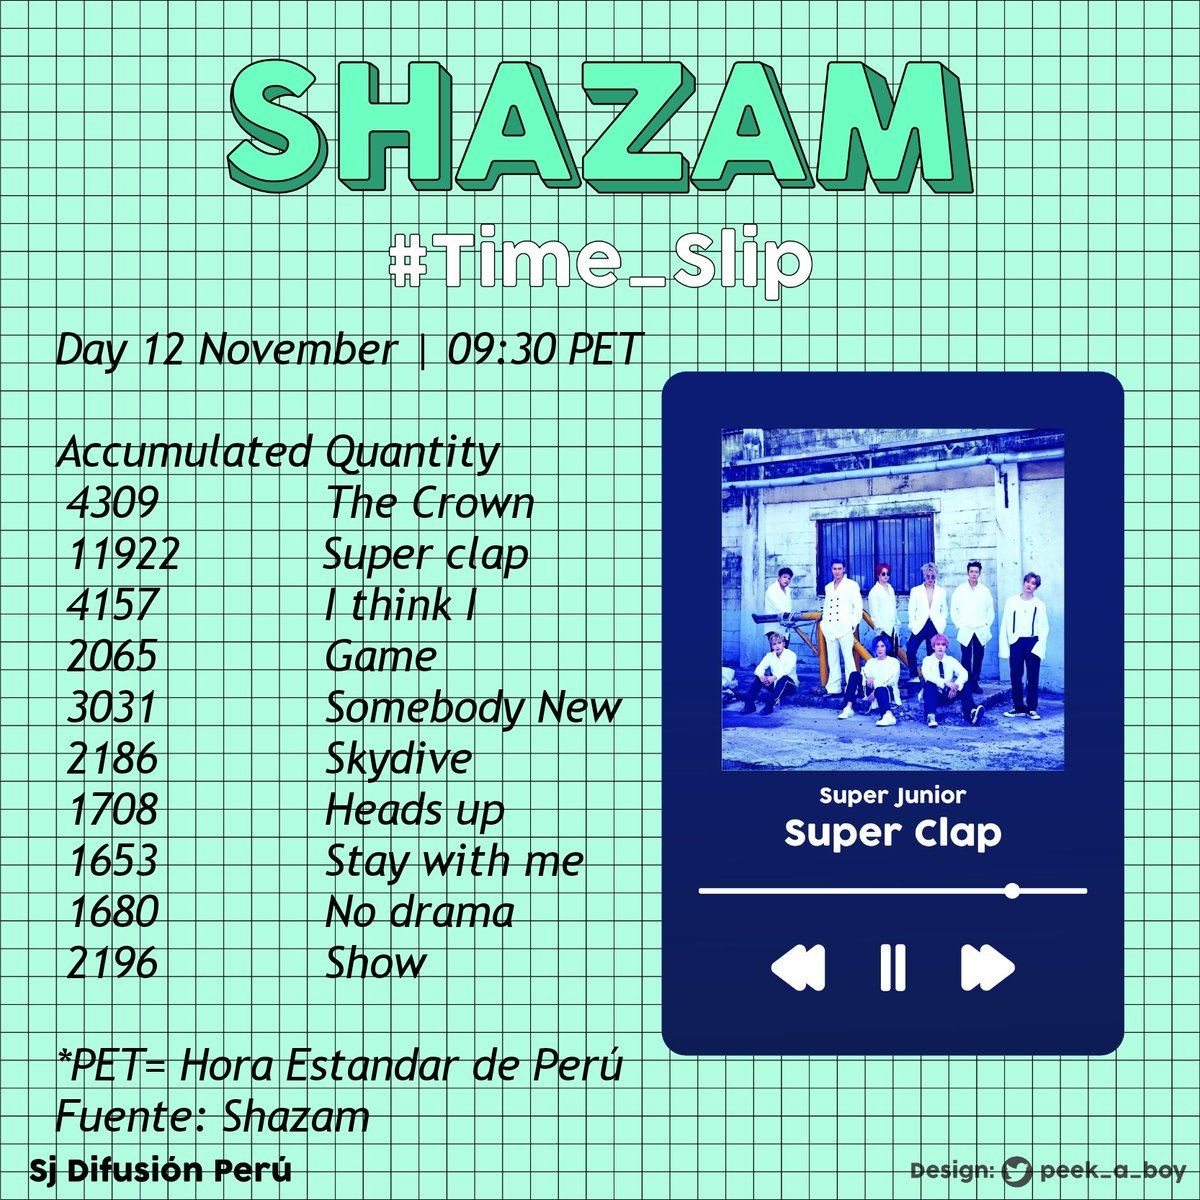 ✔📈#SJ_Time_Slip SHAZAM REPORT 📅12/11 🎧 ELF, while listening on Youtube or Spotify use the app Shazam. We continue very low in the reproductions. ¡¡Come on!! 💪🏼➡️ buff.ly/114qGgc #SJ_SUPER_Clap #SUPER_Clap #슈퍼주니어 #SUPERJUNIOR @SJofficial EFA|Team Stream